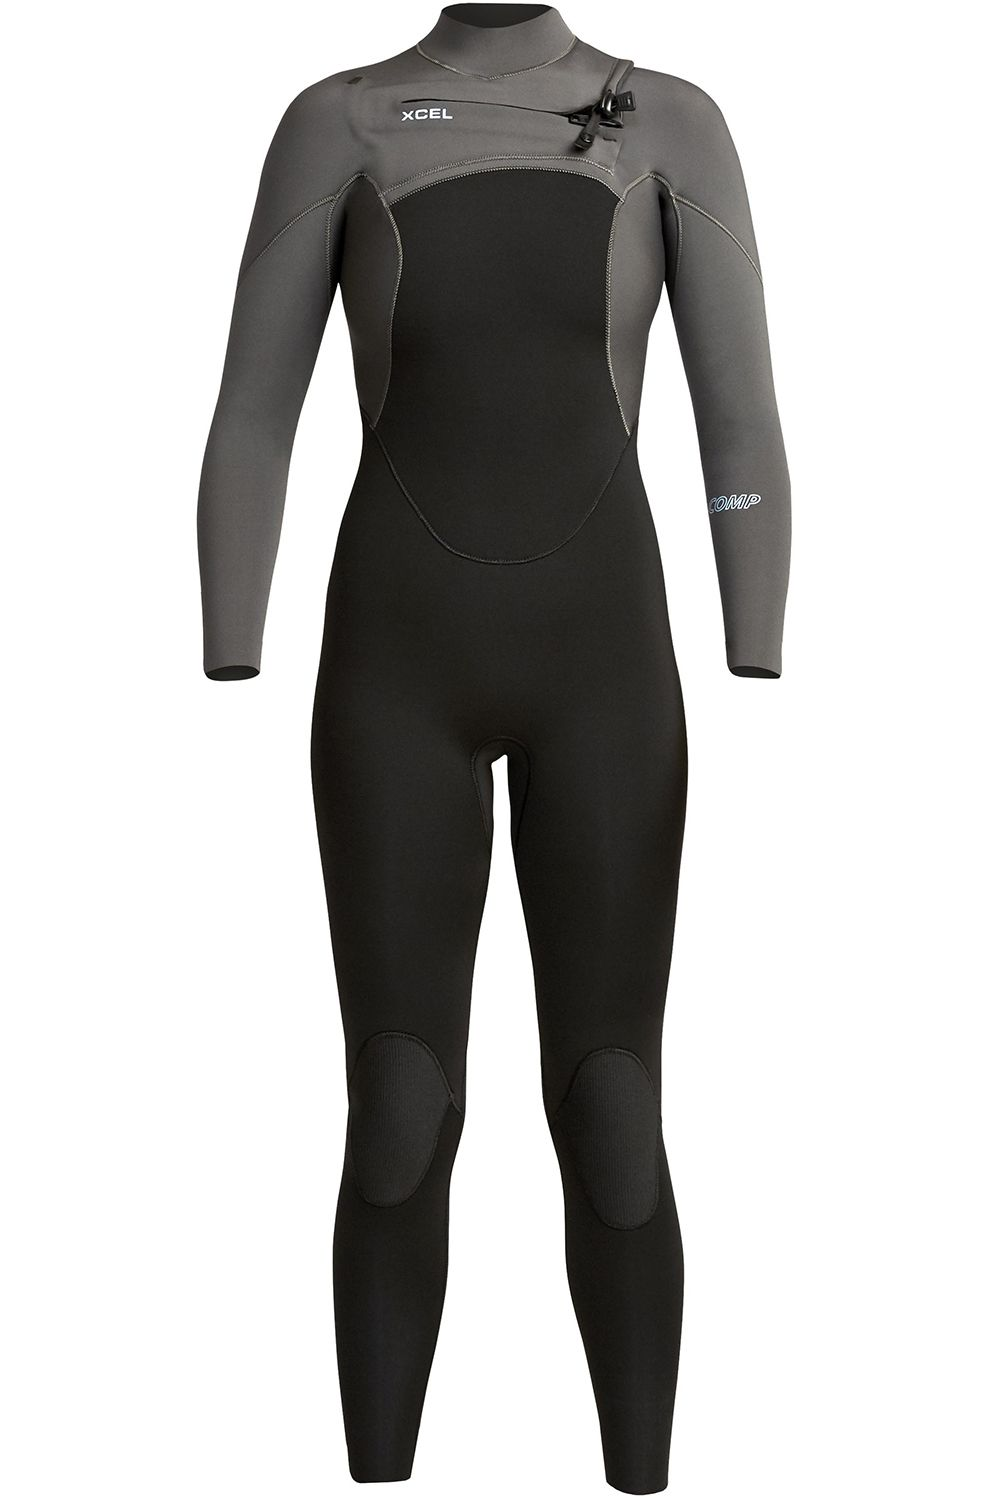 Xcel Wetsuit COMP 4/3MM - FULLSUIT THERMO LITE Black/Jet Black